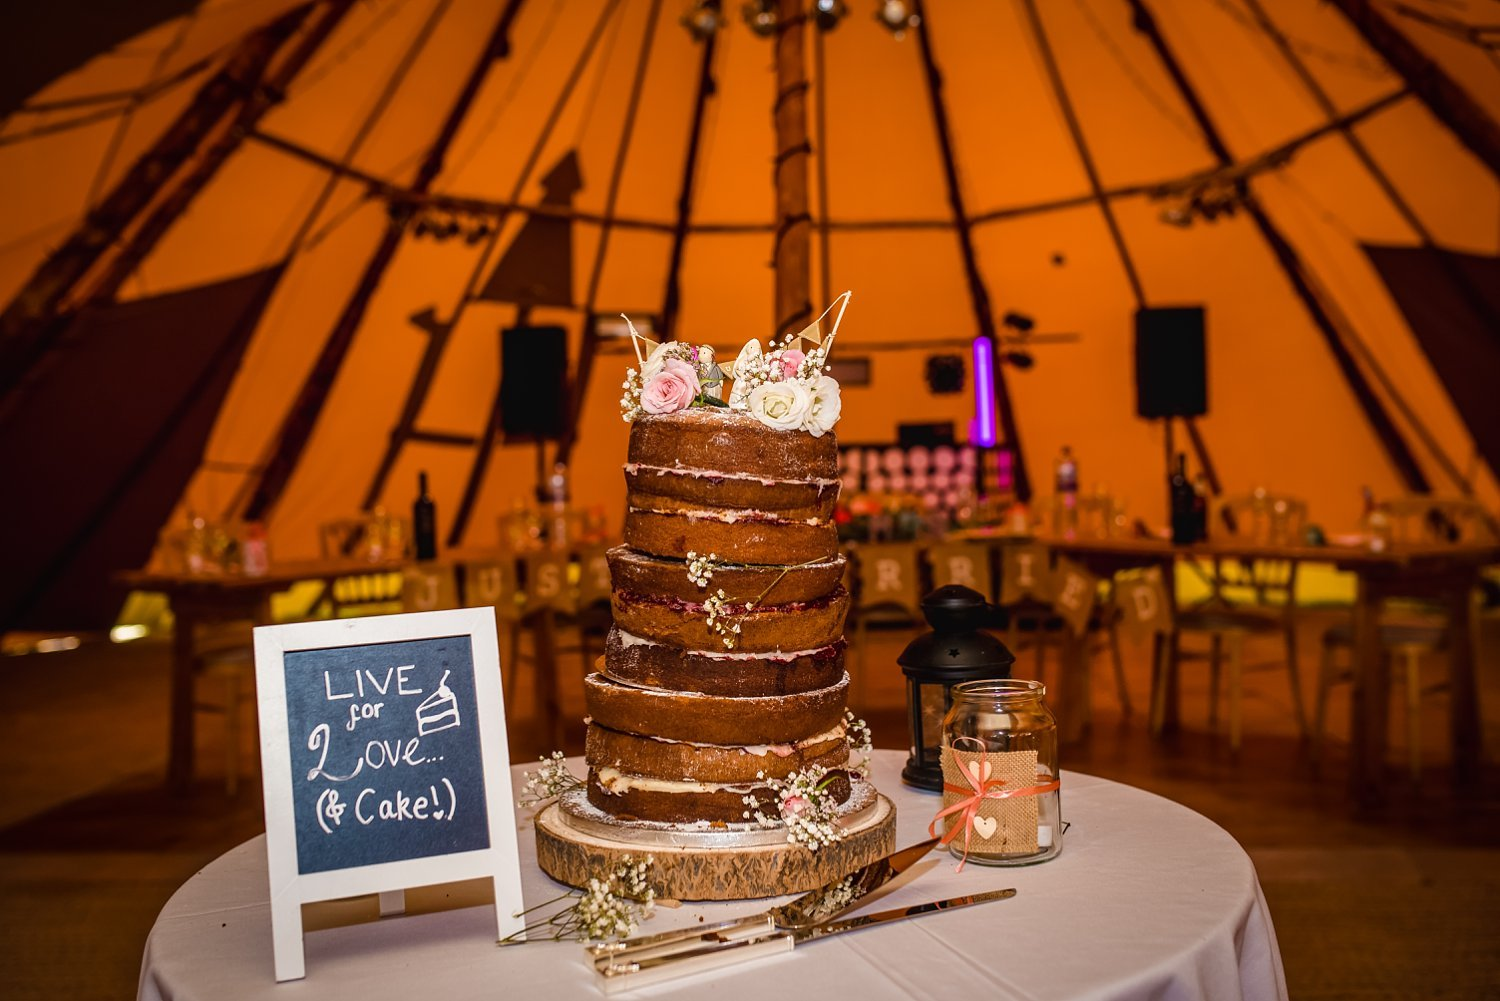 Duncton Mill Fishery Wedding - cake